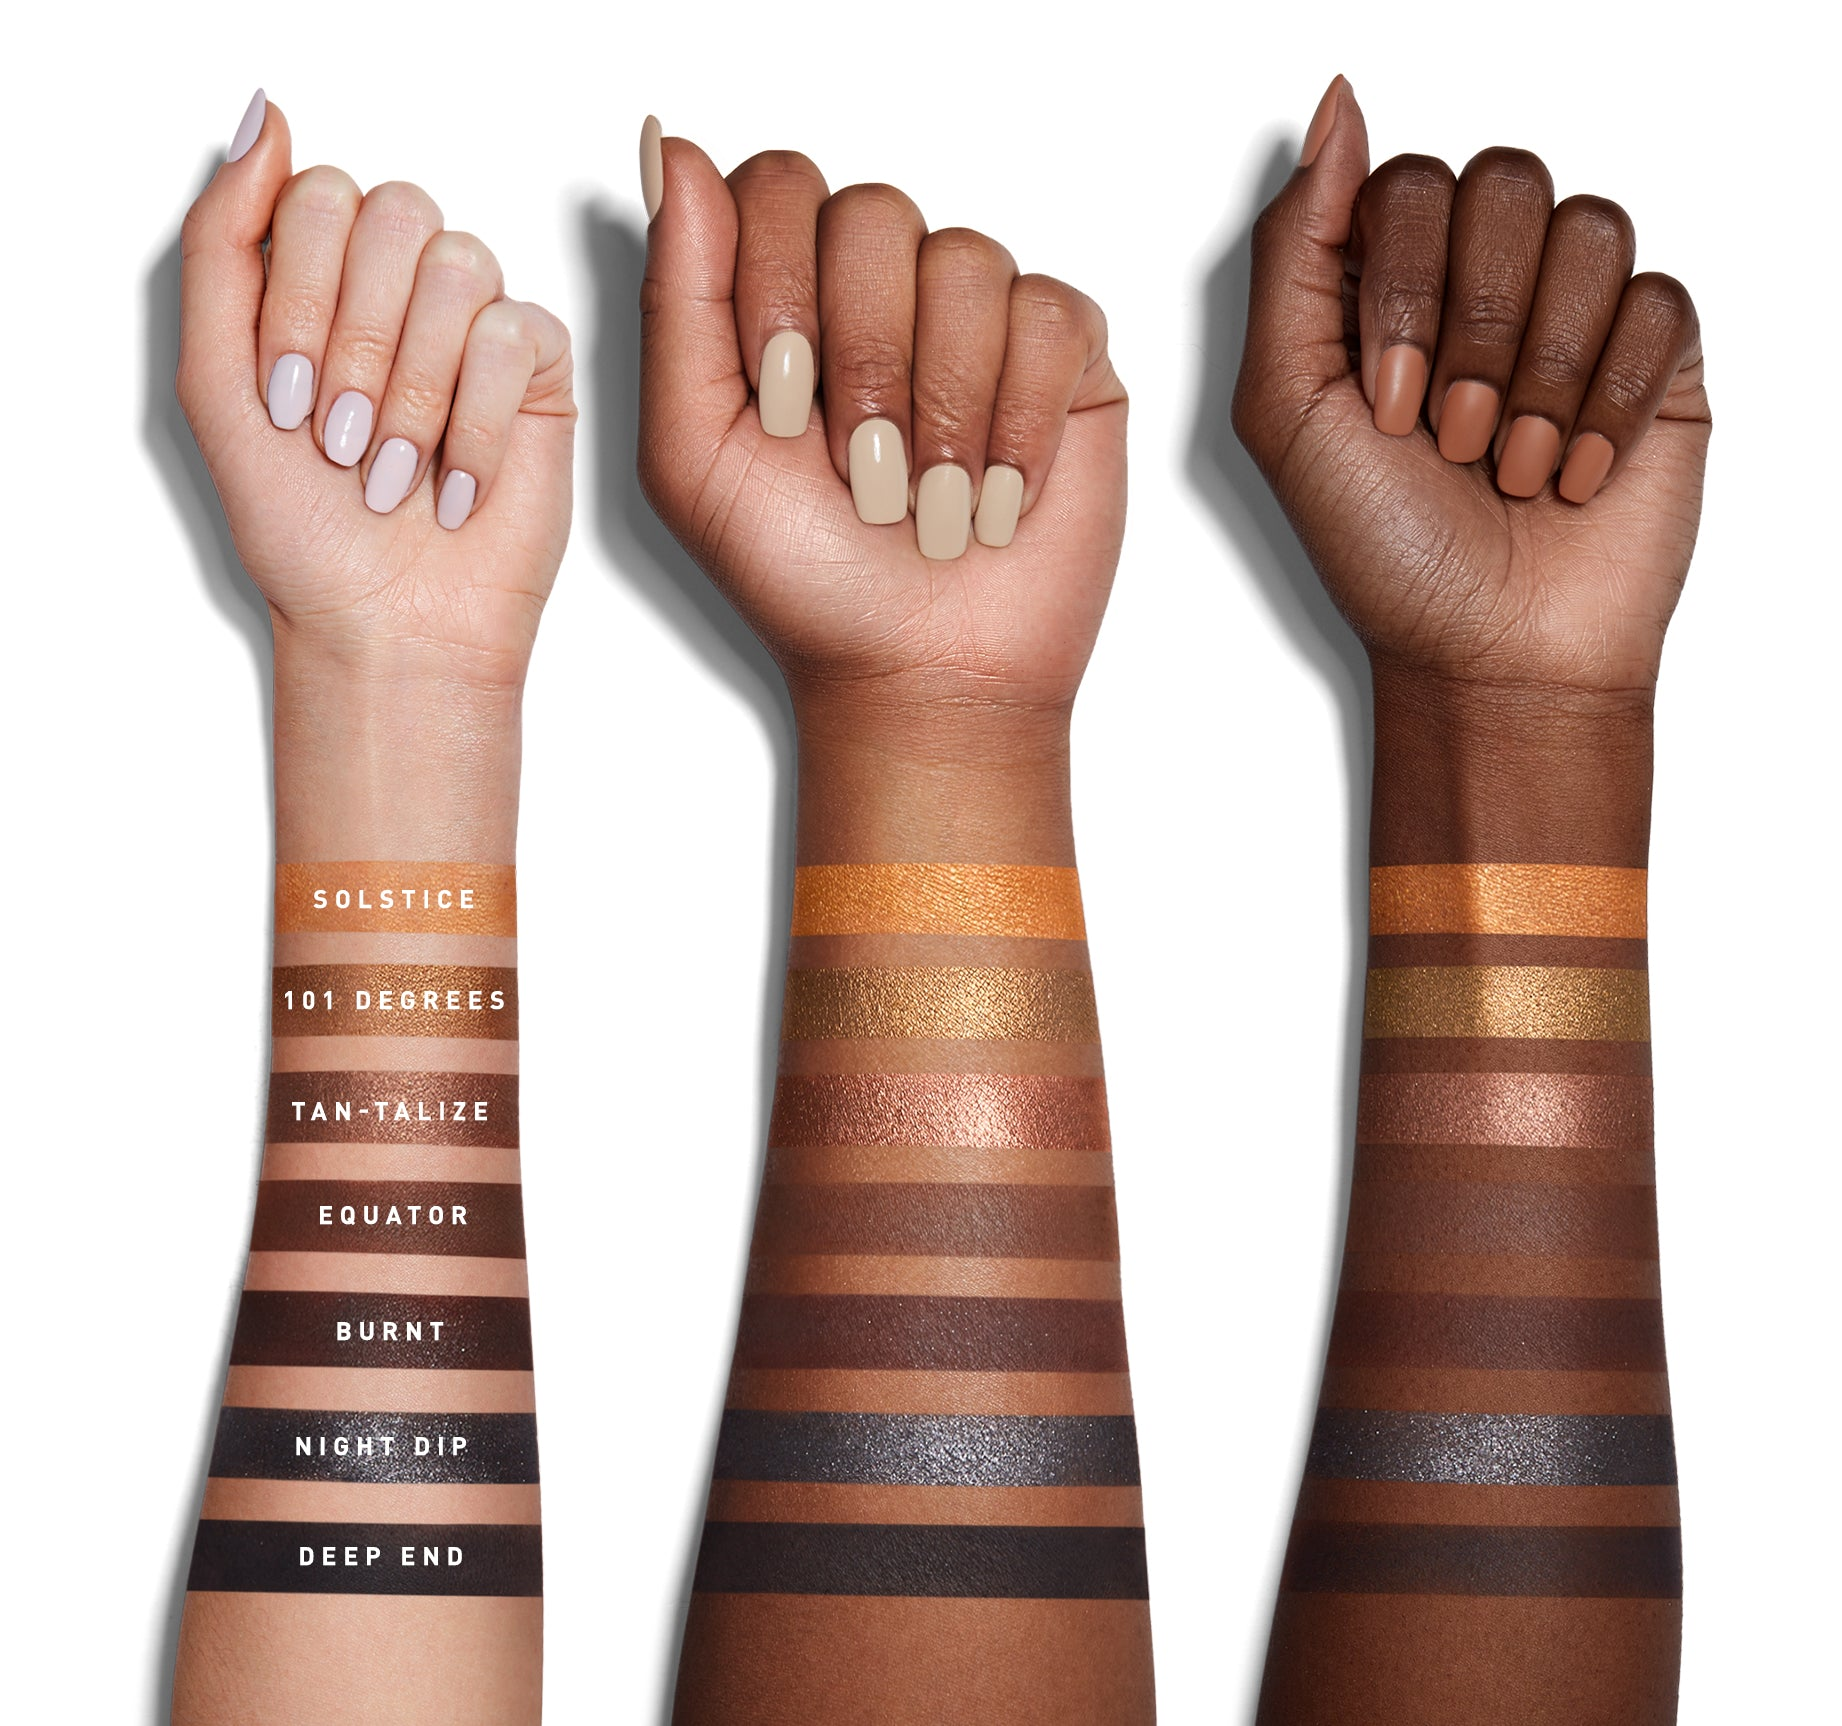 35G BRONZE GOALS ARTISTRY PALETTE ARM SWATCHES, view larger image